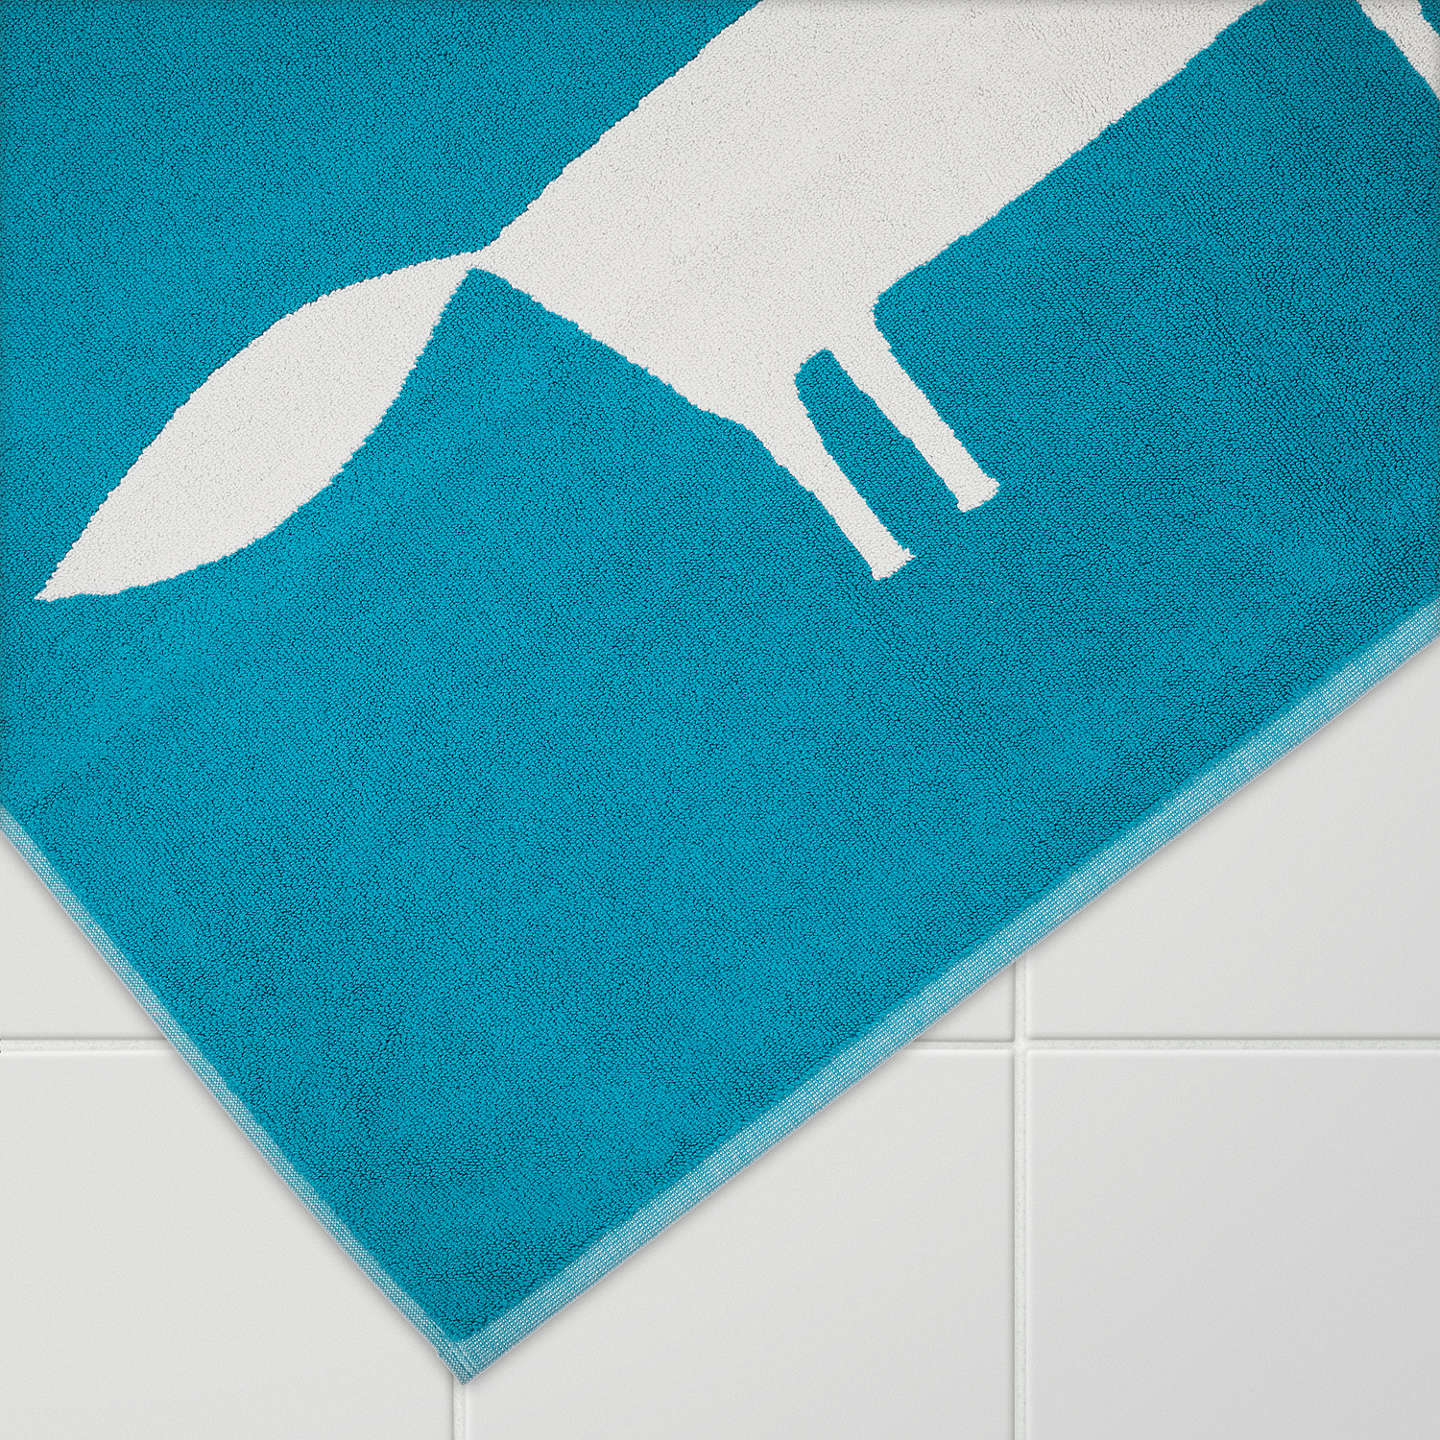 Buyscion Mr Fox Bath Mat, Teal Online At Johnlewiscom